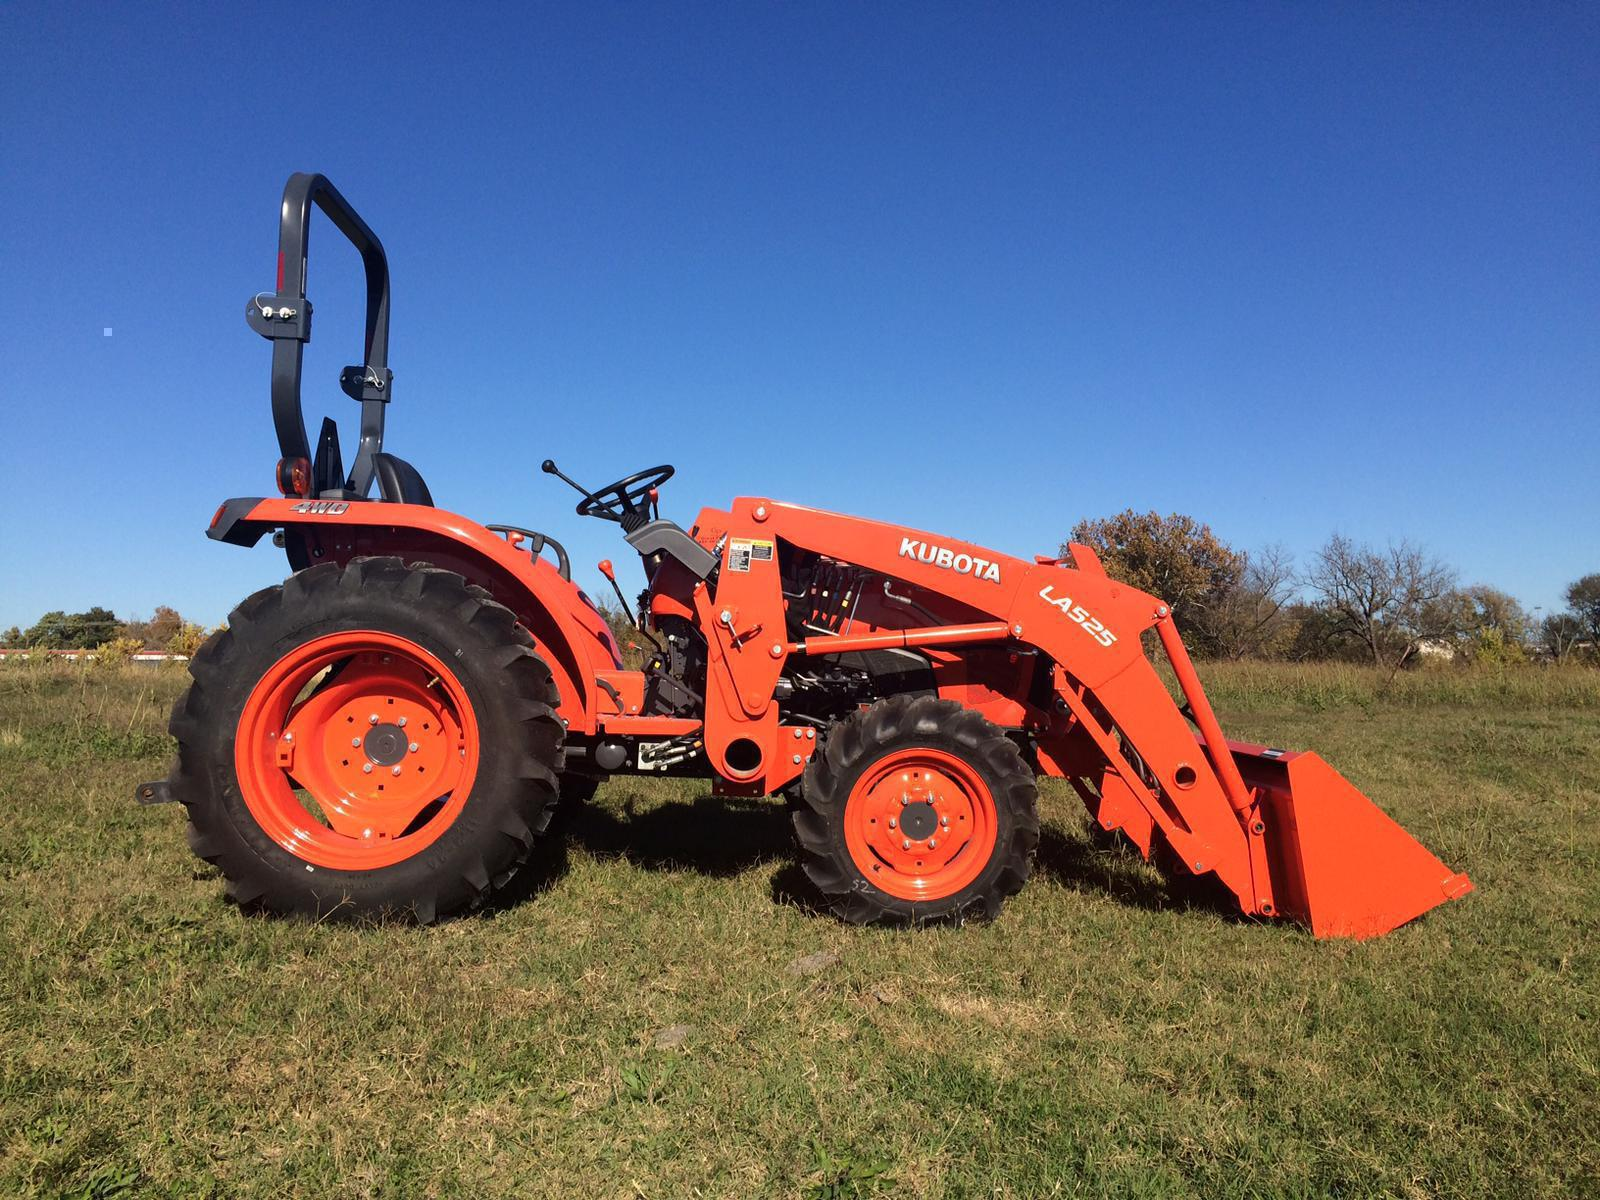 In-Stock New and Used Models For Sale in Ada, OK Great